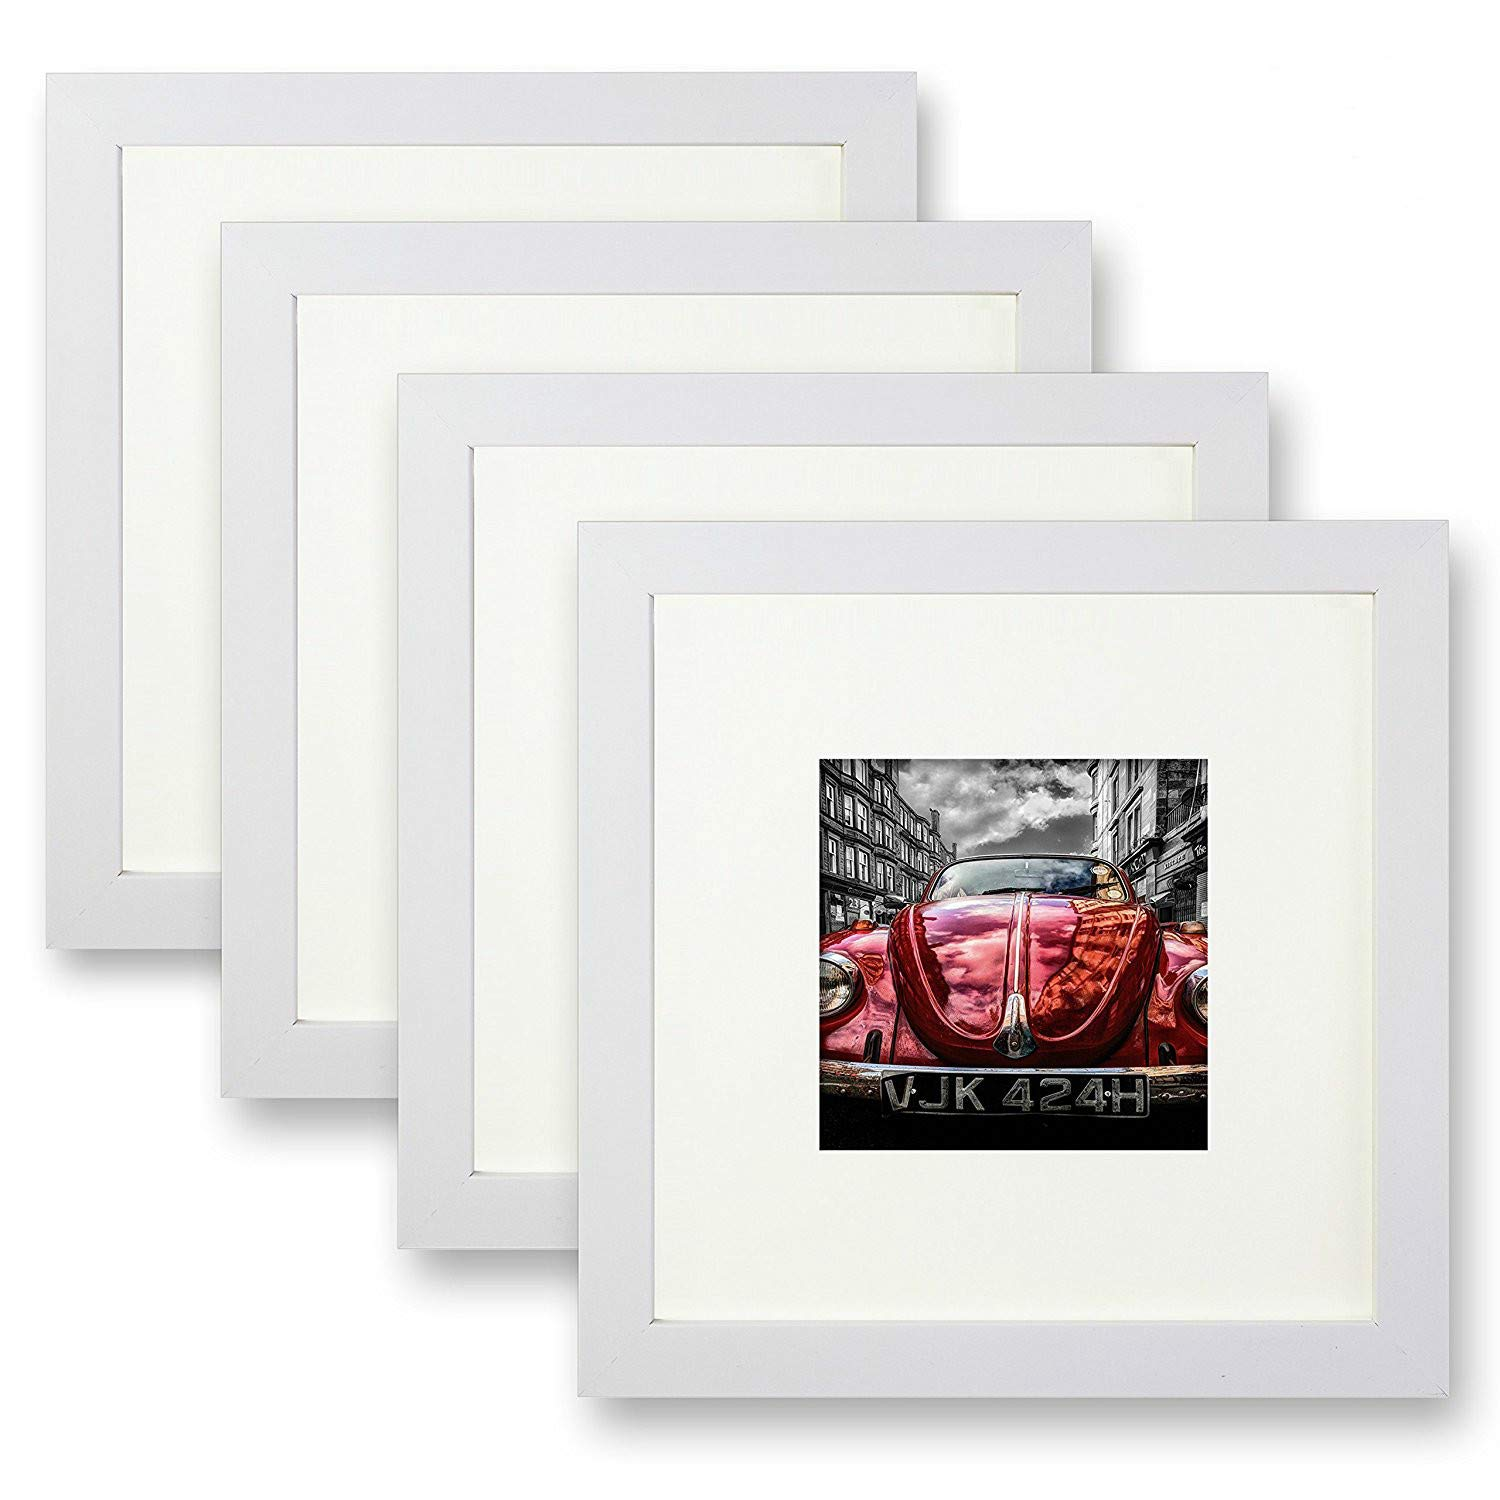 Ohbingo 8 x 8 Picture Frame White Photo Tabletop Frames with Stand Set of 4 for Pictures 4x4 with Mat or 8x8 Without Mat for Table or Wall Decoration by Ohbingo